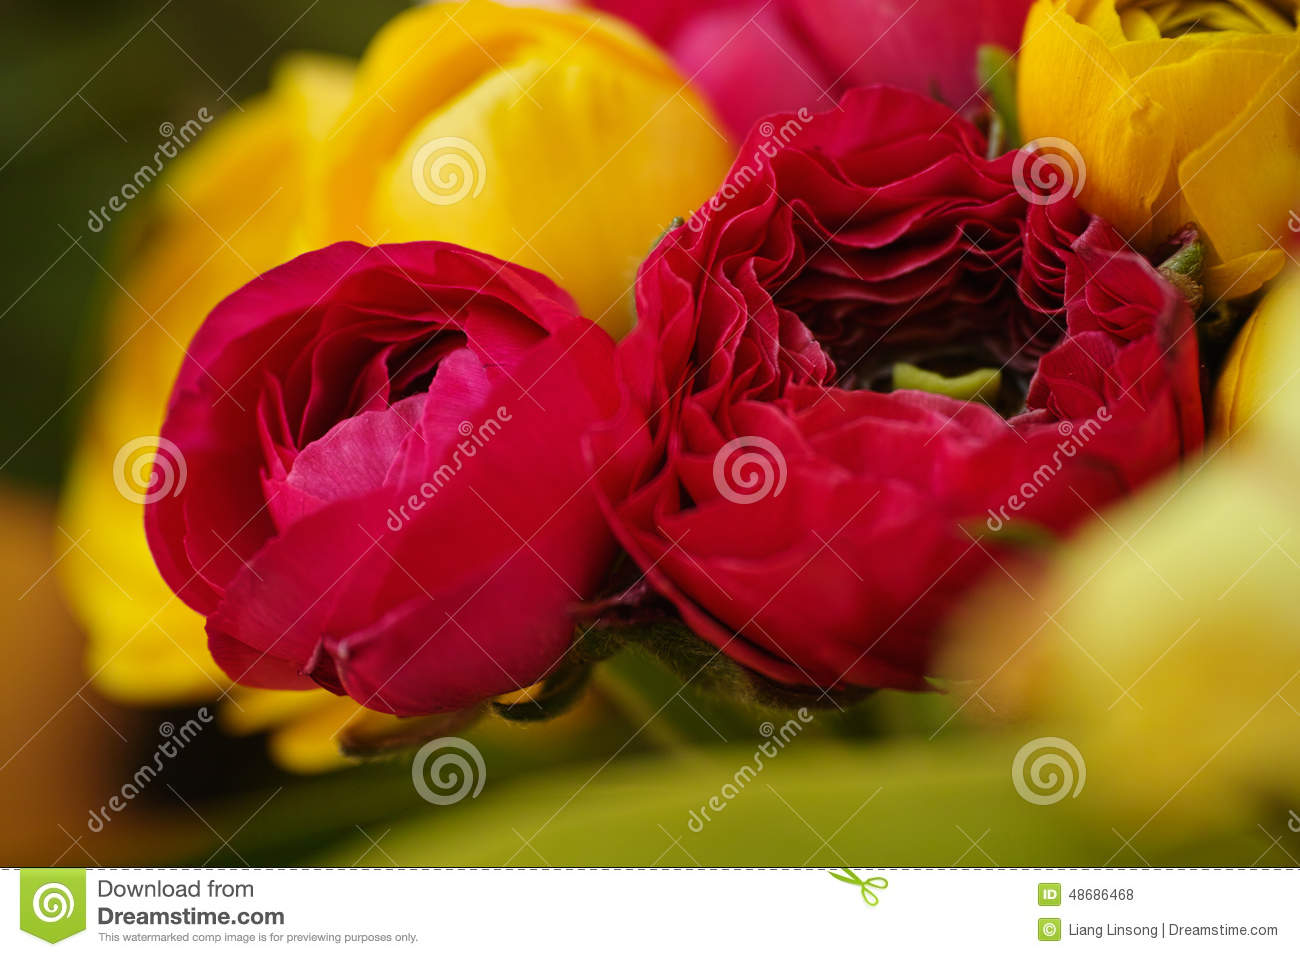 Colorful flowers blooming stock photo. Image of pink - 48686468